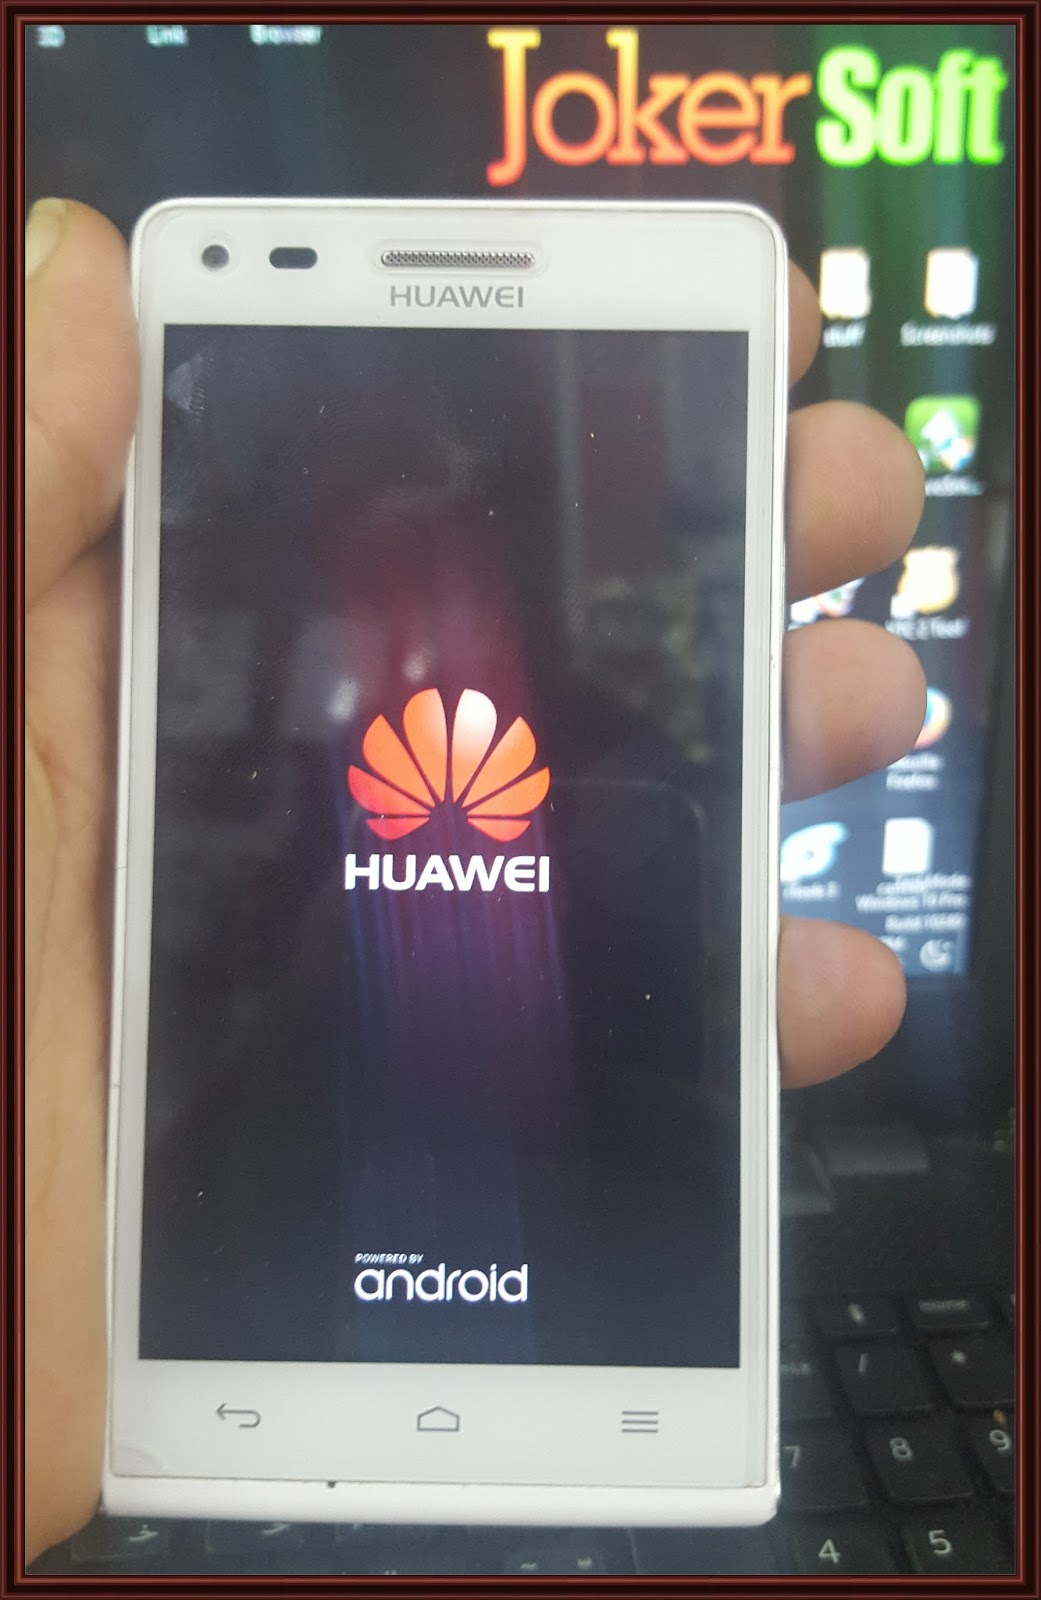 Huawei G630 U10 Recovery Image Verify Failed